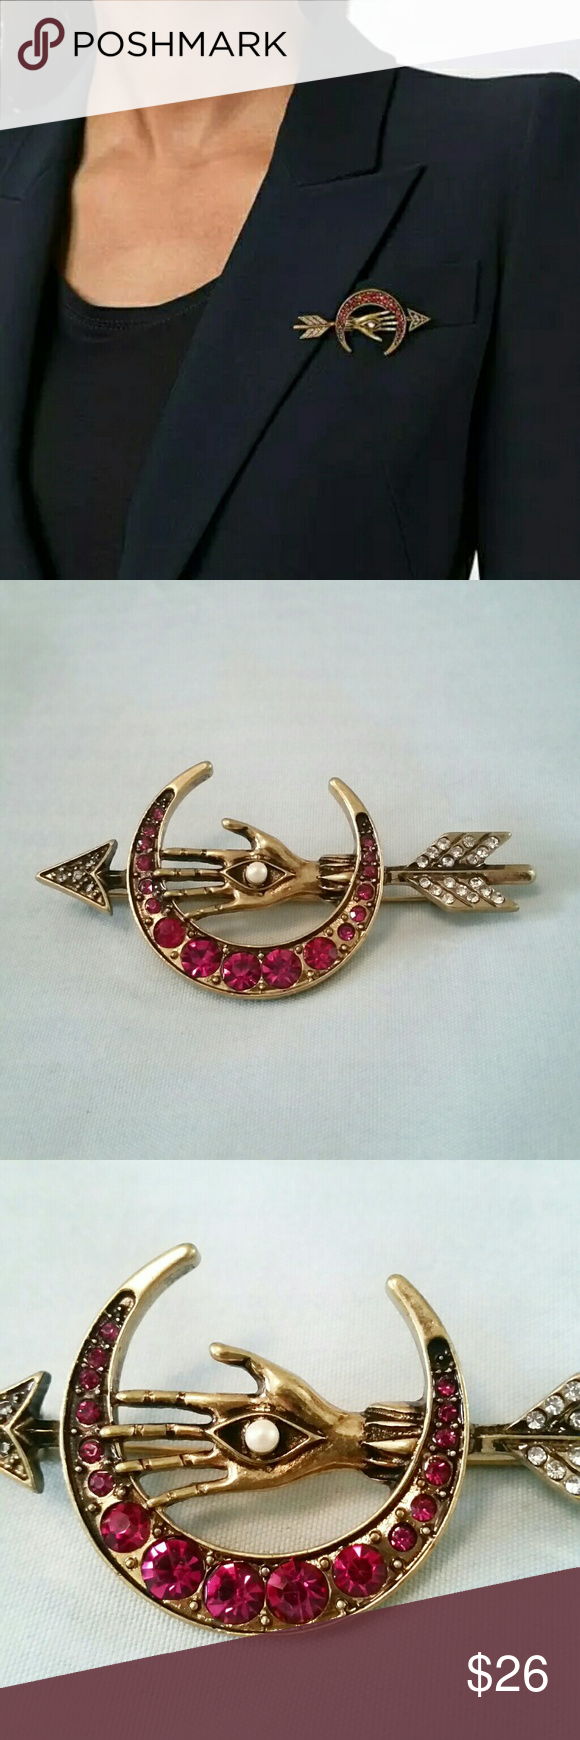 """Mystic moon arrow brooch Mysterious and stunning bronze brooch featuring an arrow behind a magenta-red, gem-encrusted moon, centered by an open hand with evil eye symbol on the palm, and a pearl bead as the pupil. Clear gems on the feather end of the arrow. Striking piece that gives cool, witchy gypsy boho vibes.  2.5"""" by 1.25"""" 2"""" clasp on back  See closet for matching necklace! Wild Rose Boutique  Jewelry Brooches"""